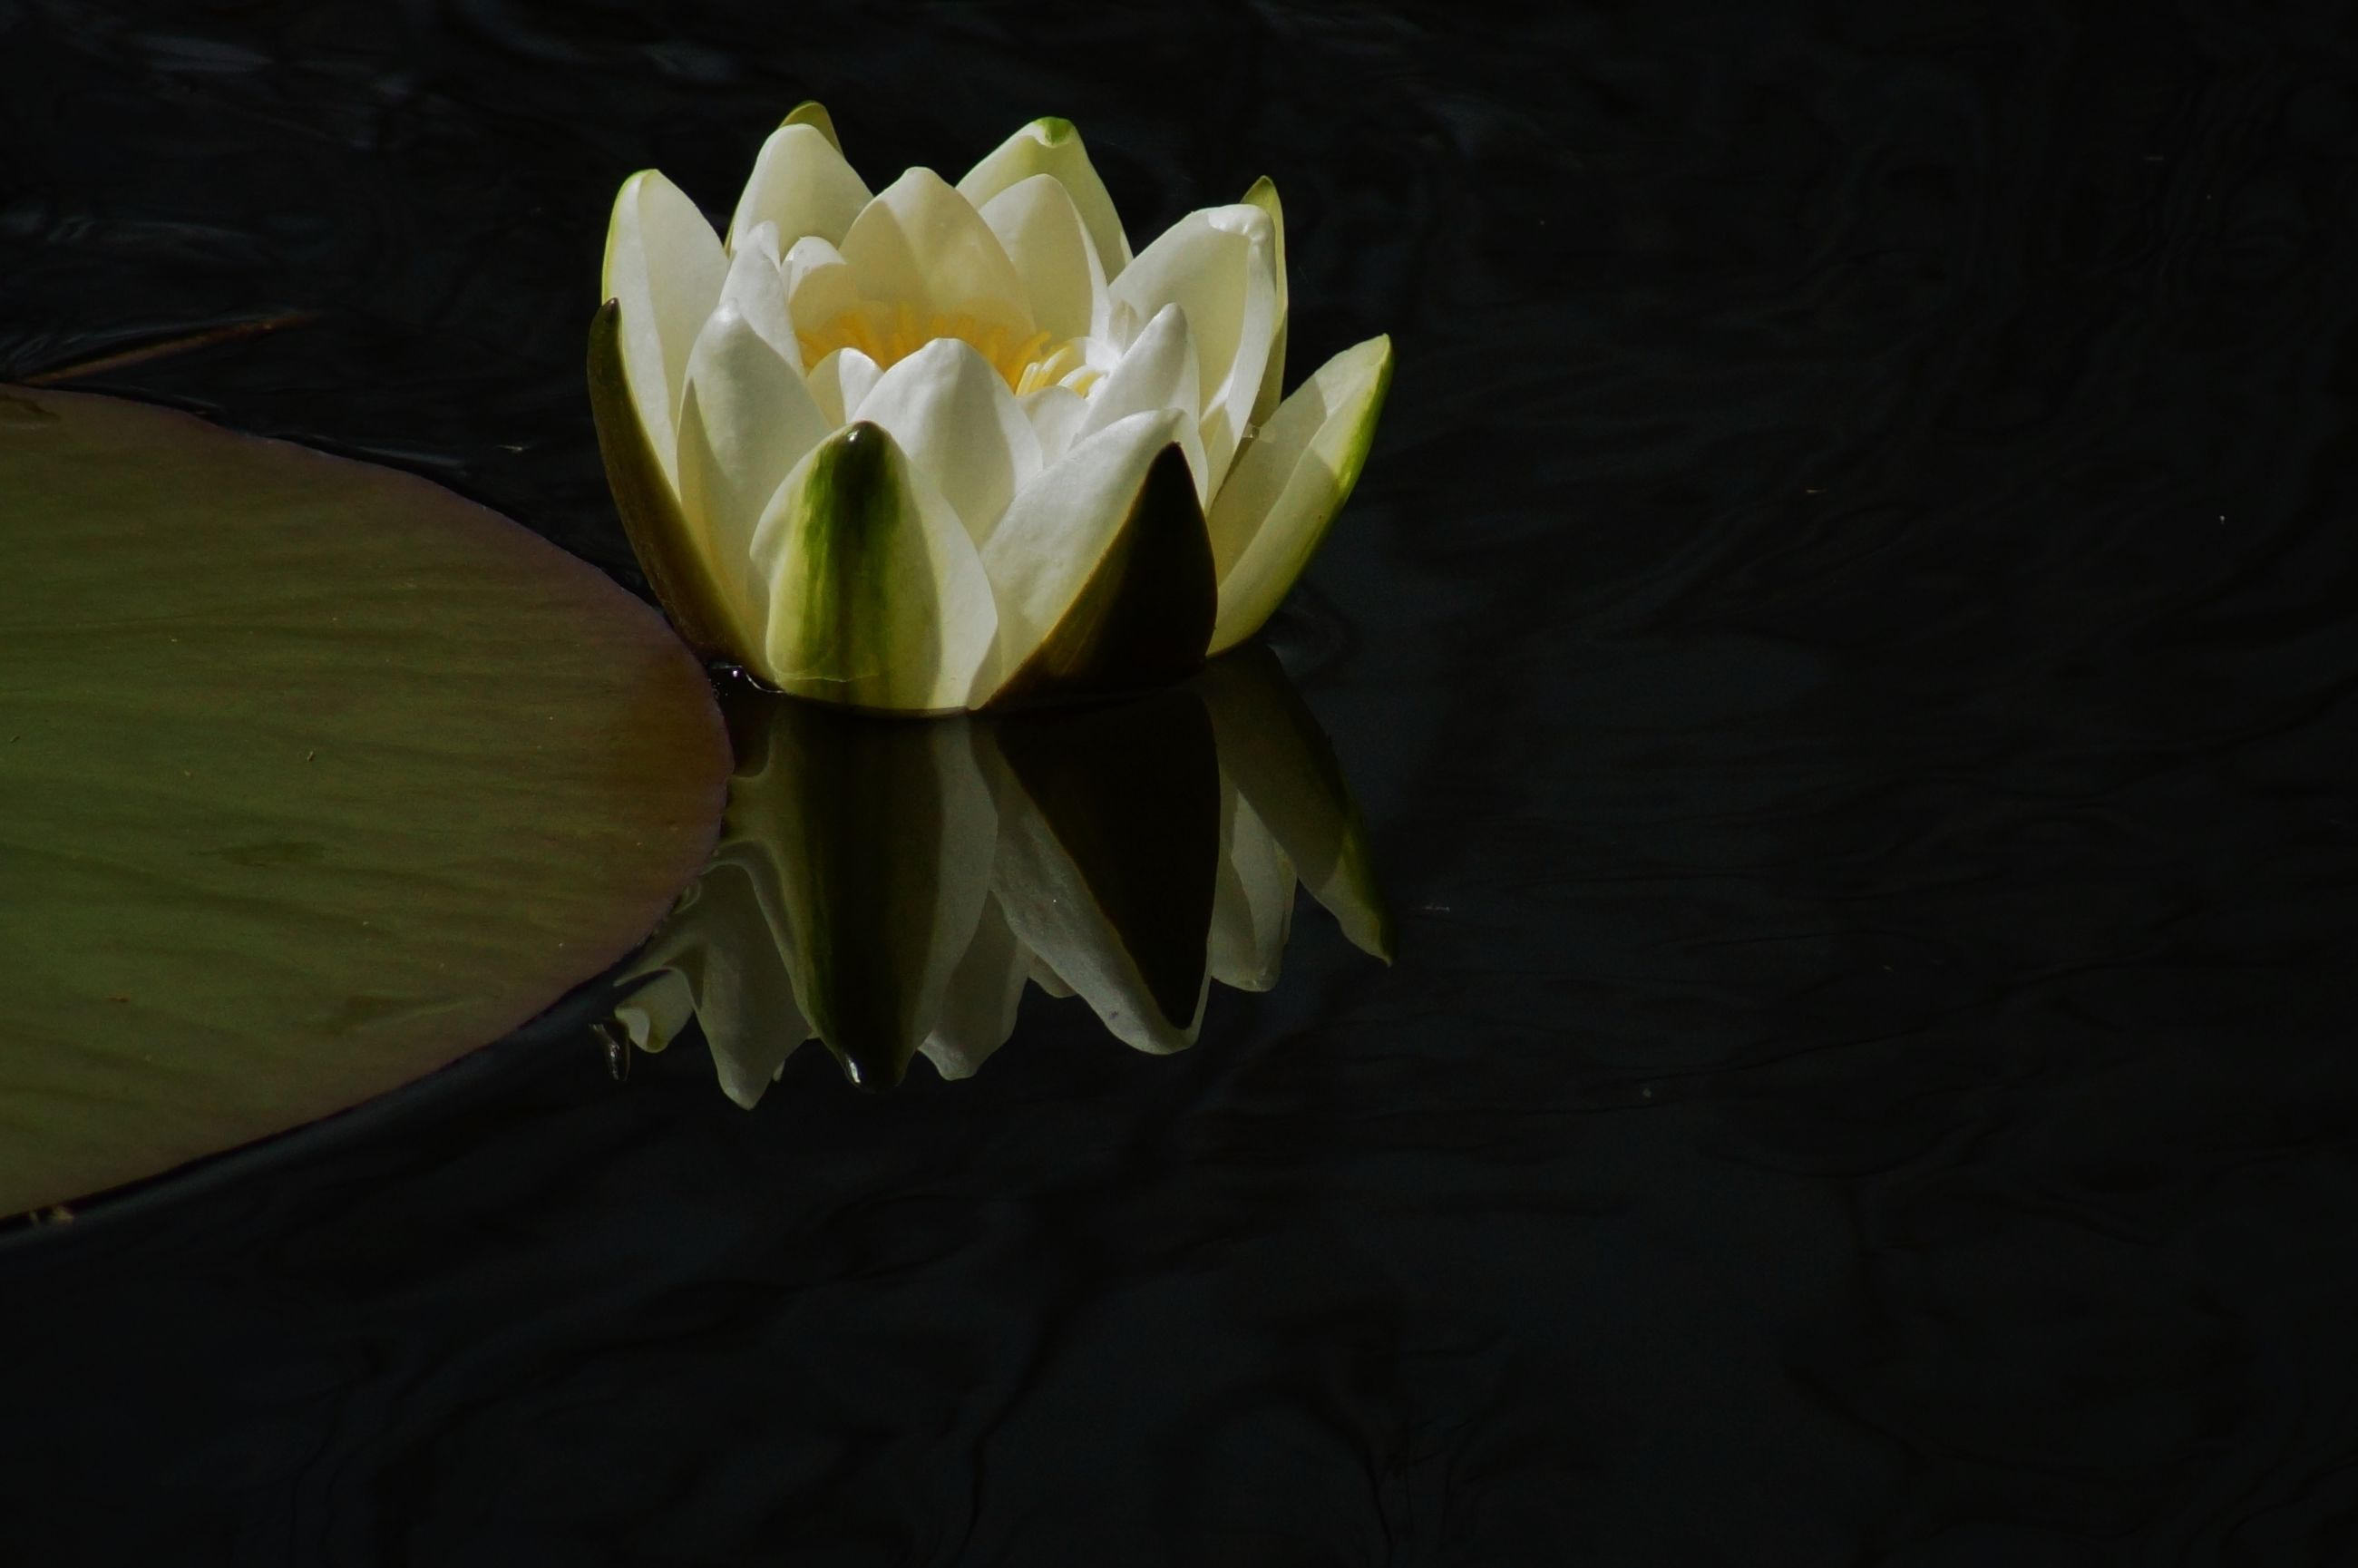 flower, petal, freshness, flower head, fragility, beauty in nature, growth, water lily, nature, plant, white color, single flower, blooming, leaf, close-up, pond, water, lotus water lily, stem, in bloom